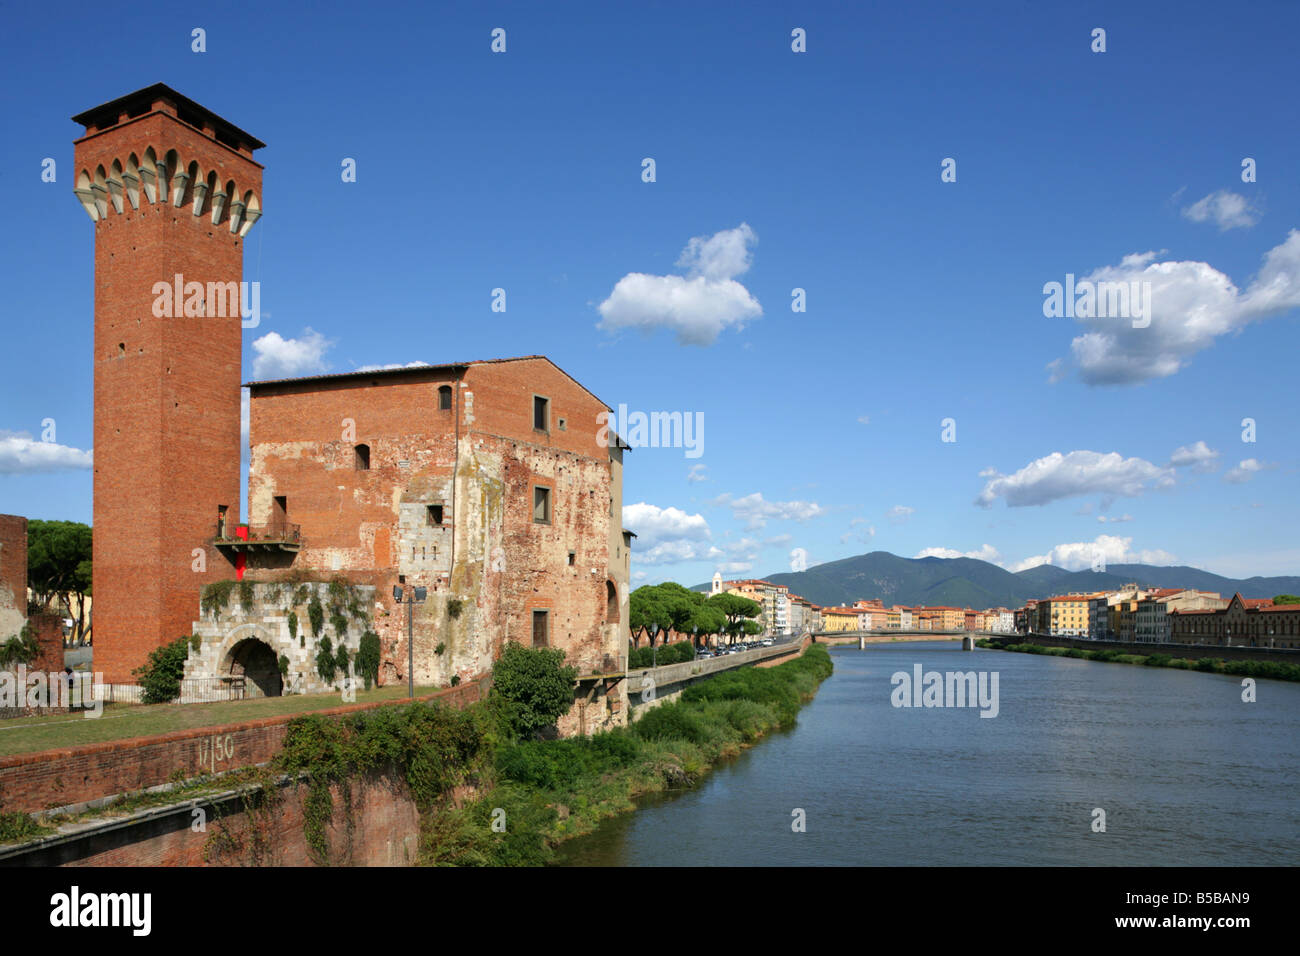 Torrre Guelfa and Fortezza Vecchia on the banks of the River Arno, Pisa, Italy. Stock Photo